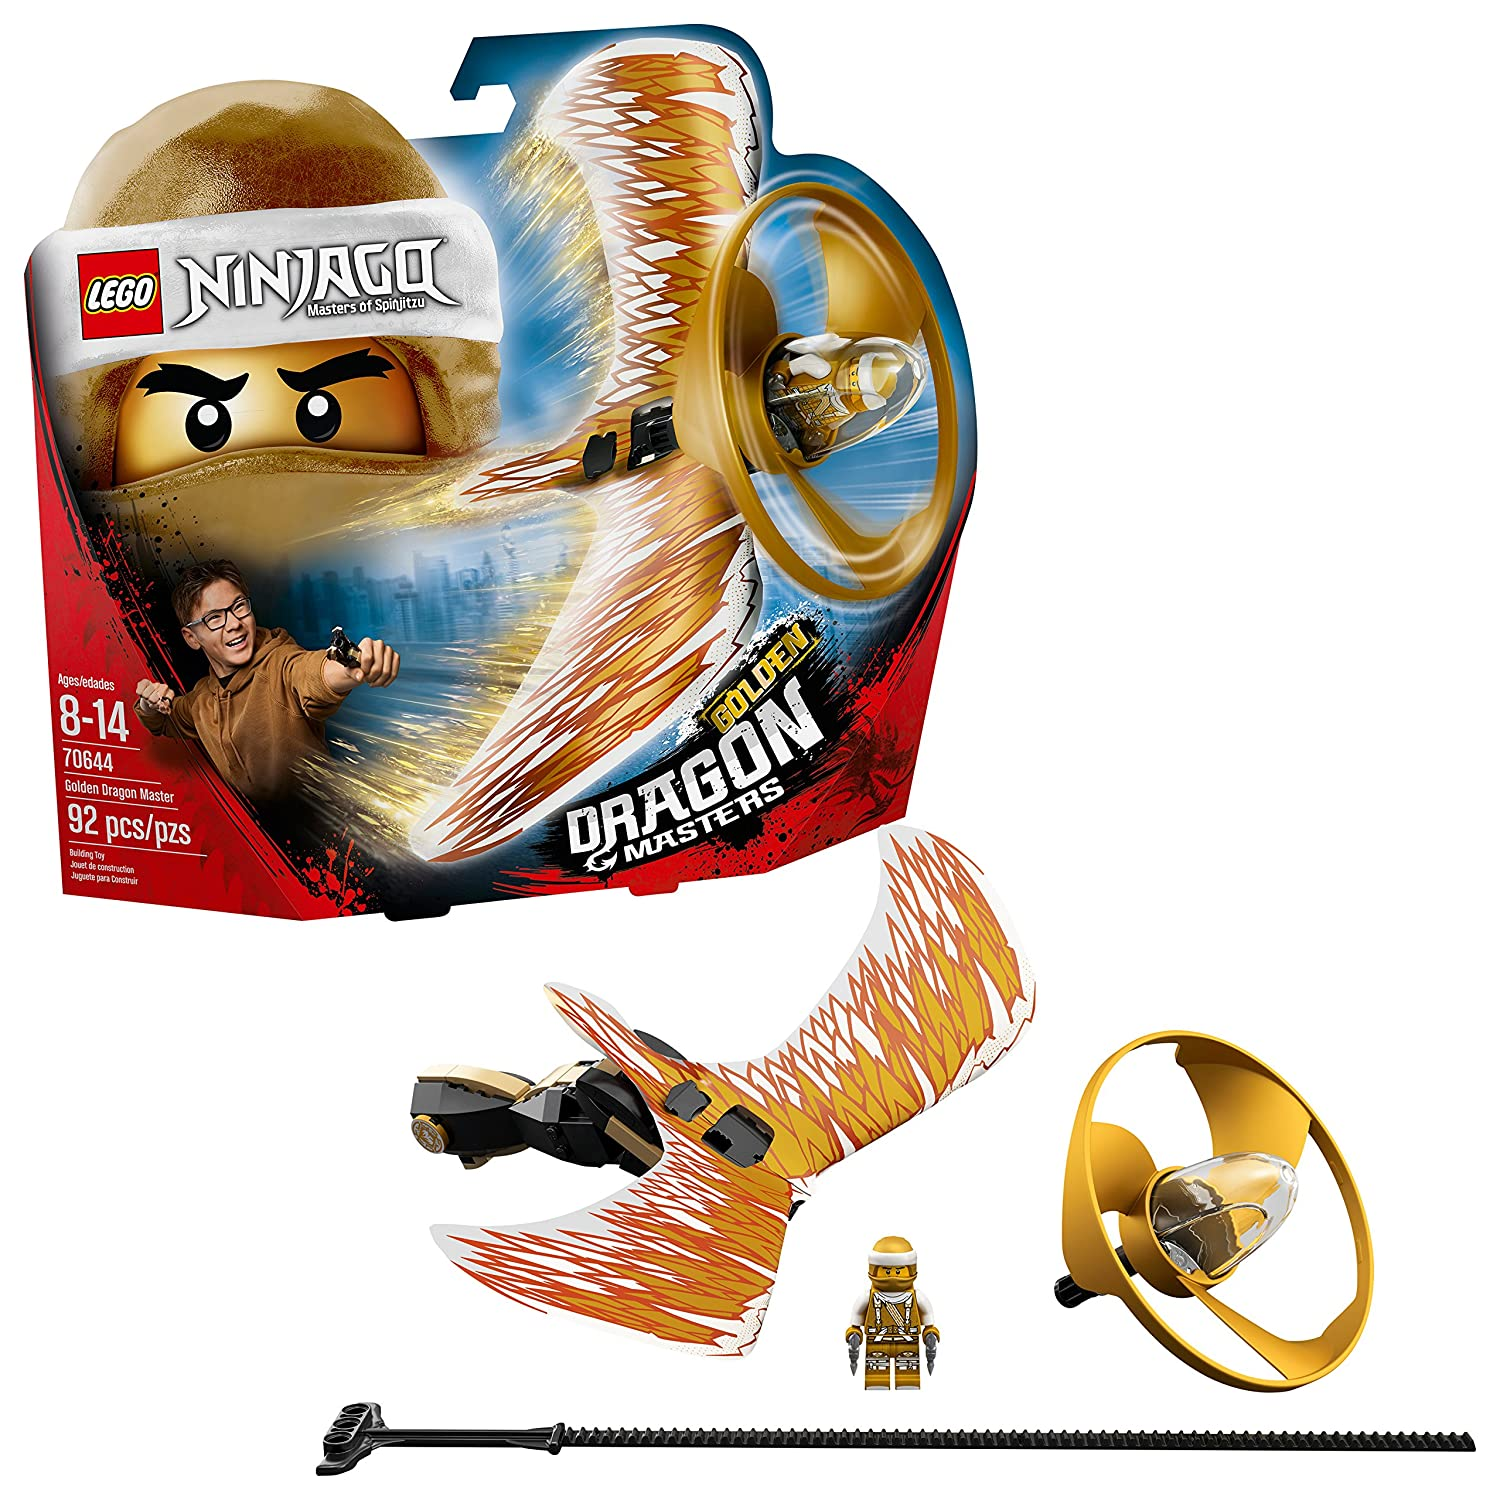 LEGO NINJAGO Golden Dragon Master 70644 Building Kit (92 Piece) 6212736